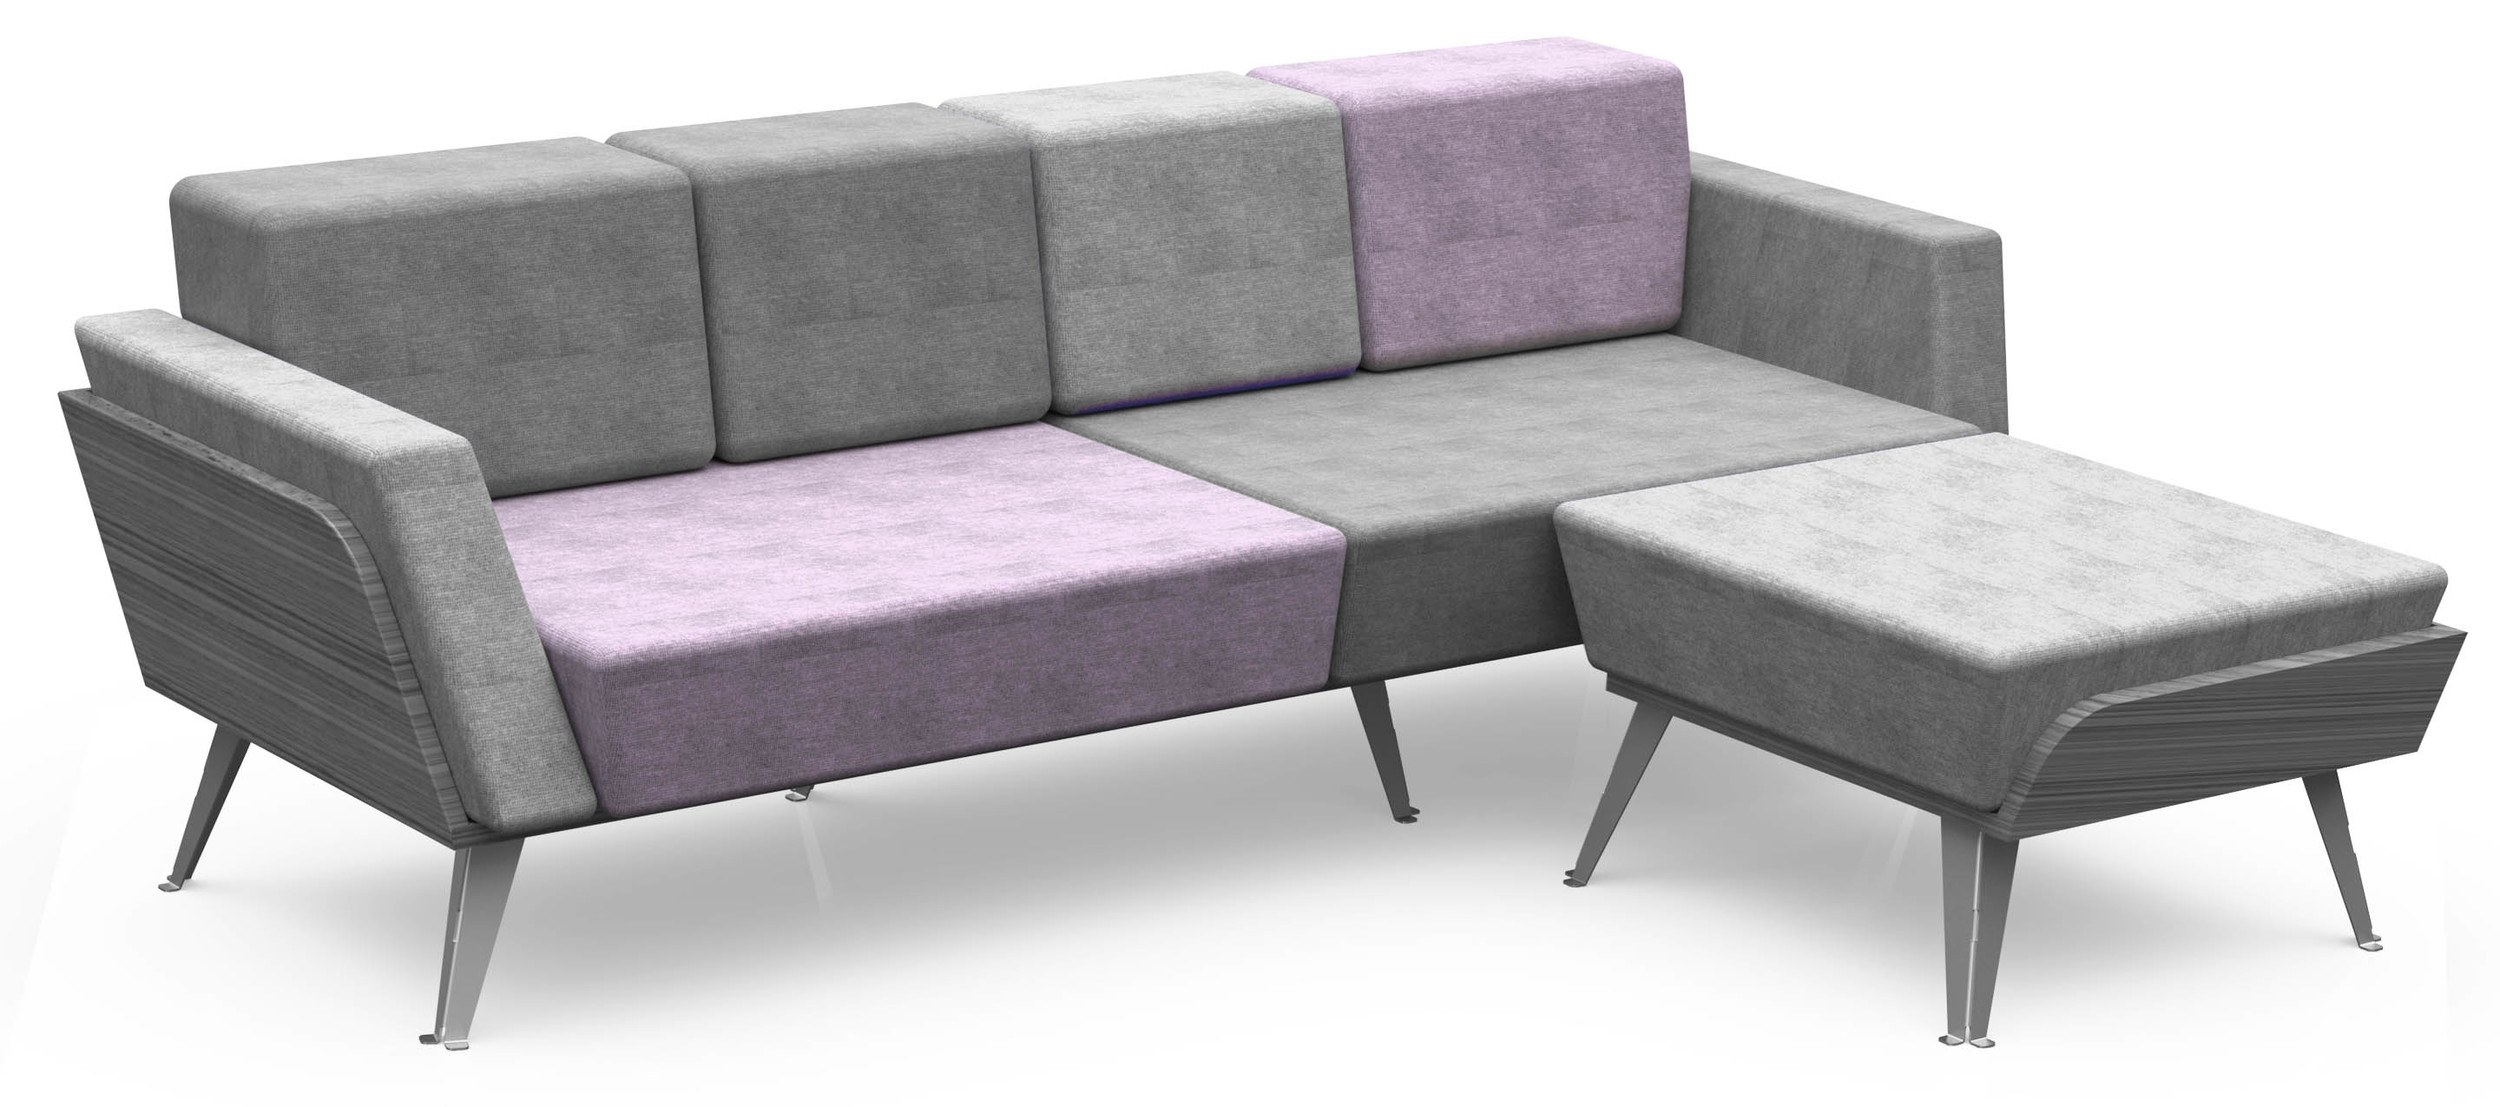 Garnitur_Sofa_Hocker_grau_2880.jpg